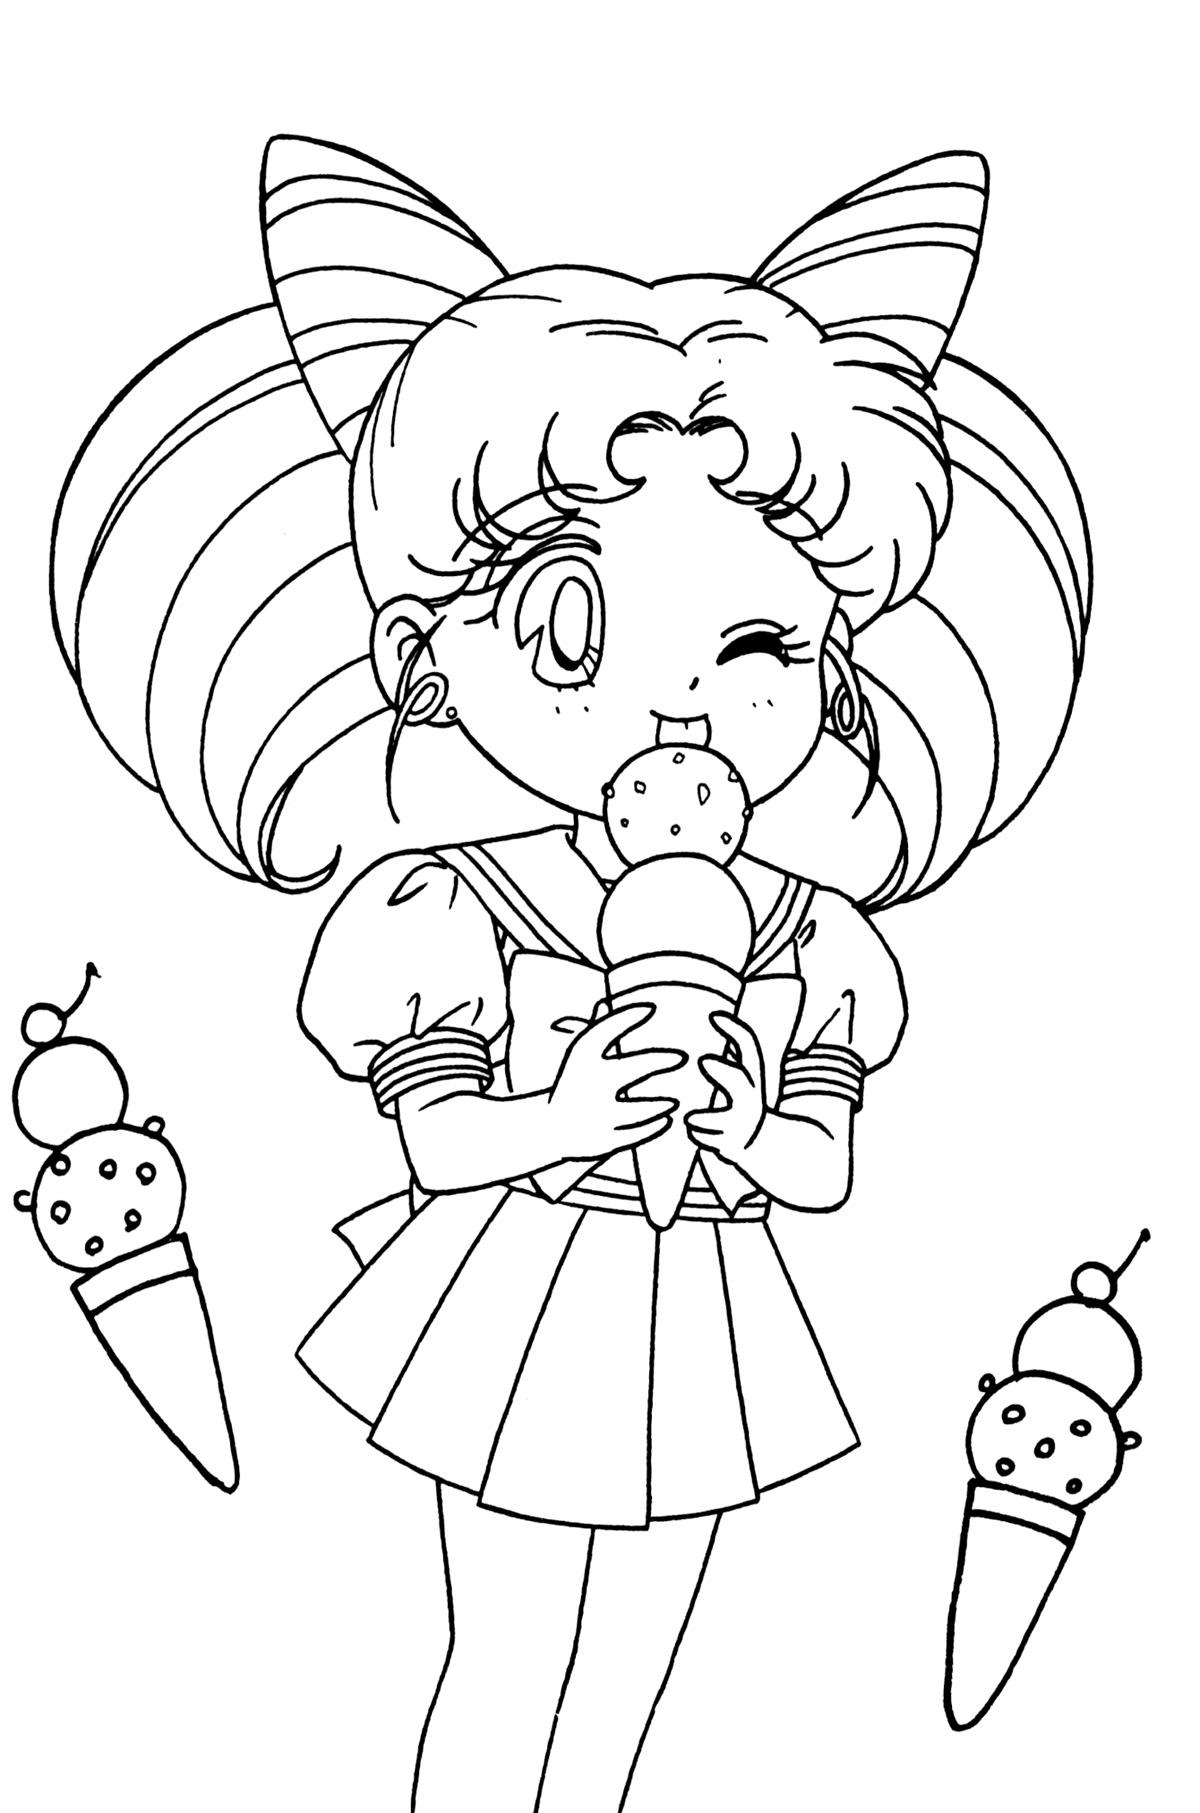 photo relating to Sailor Moon Coloring Pages Printable named Sailor Moon Coloring Webpages at  Absolutely free for